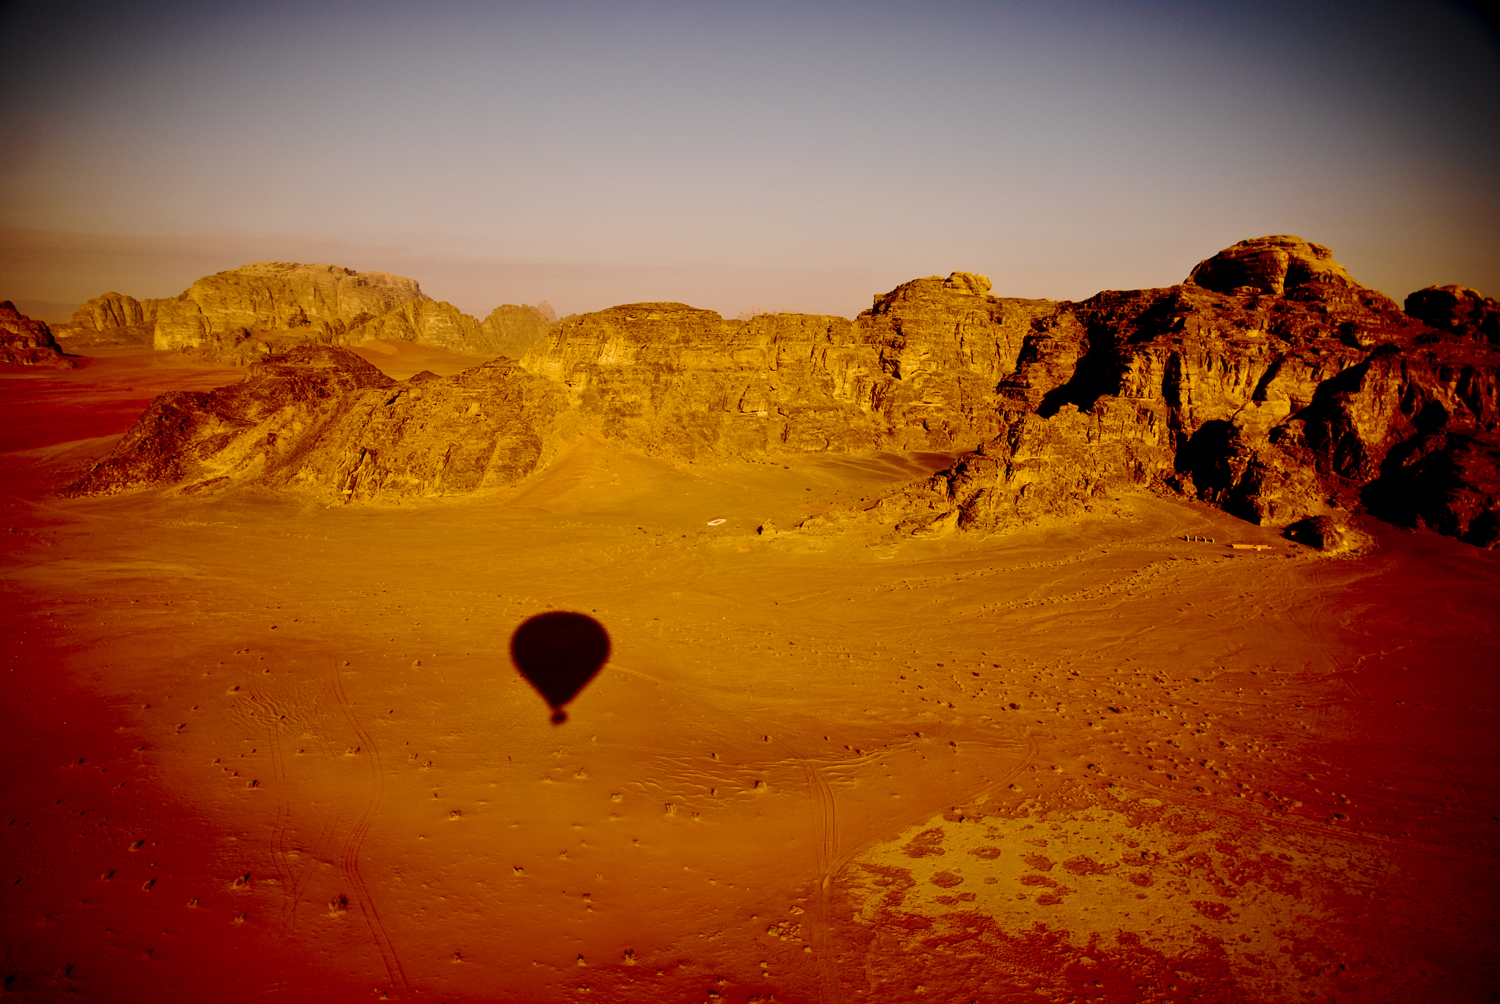 Deserto de Wadi Rum visto do ar